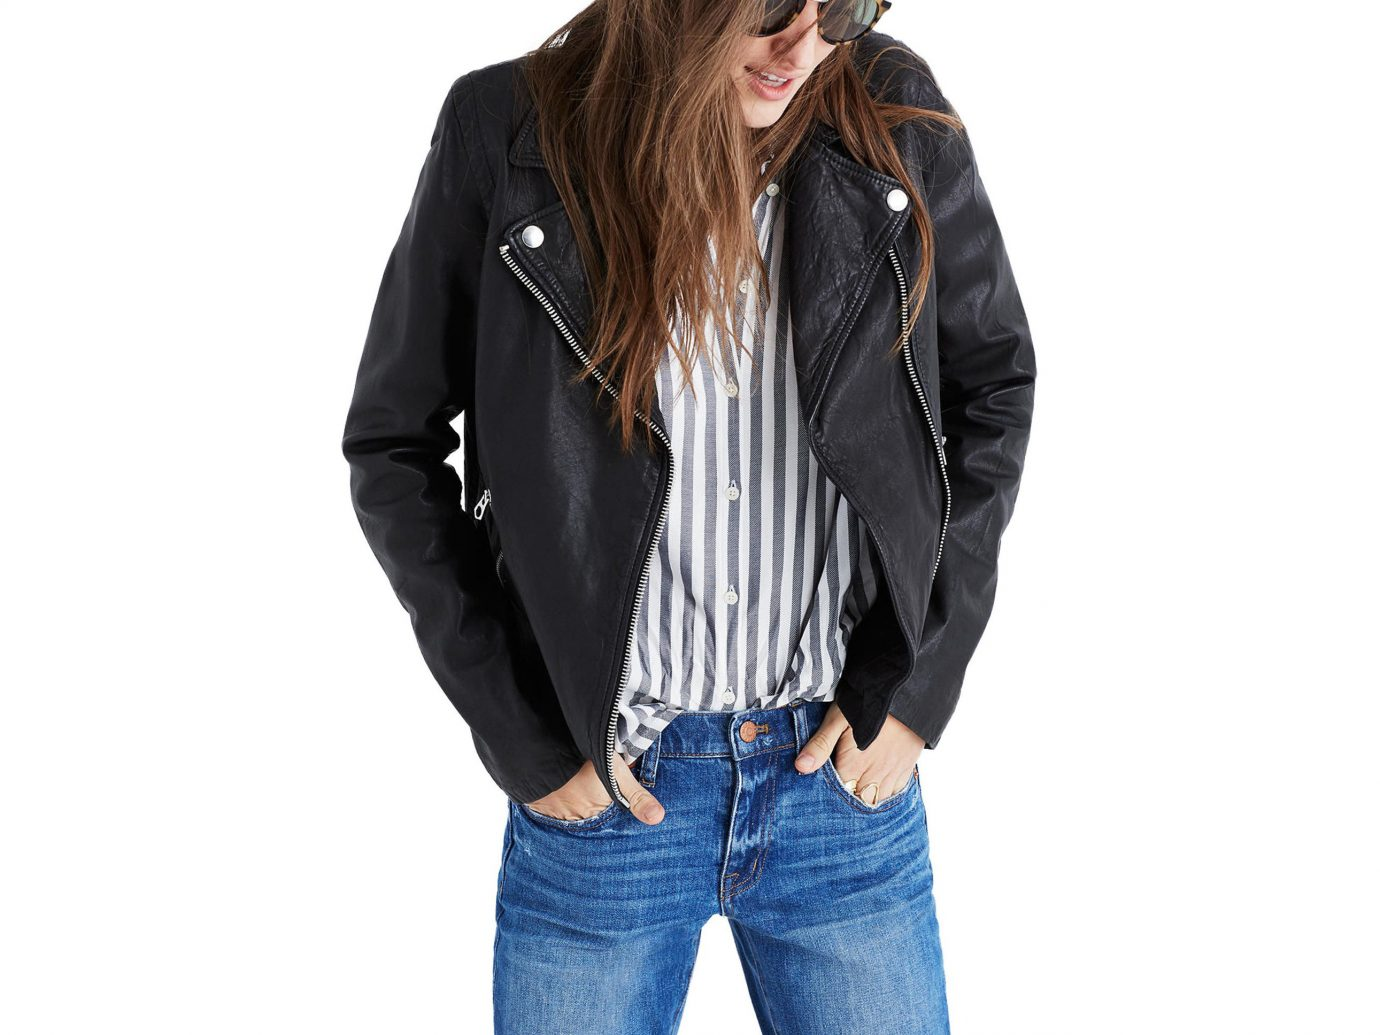 Travel Shop person jacket leather jacket wearing standing leather jeans sleeve hood zipper denim posing hoodie